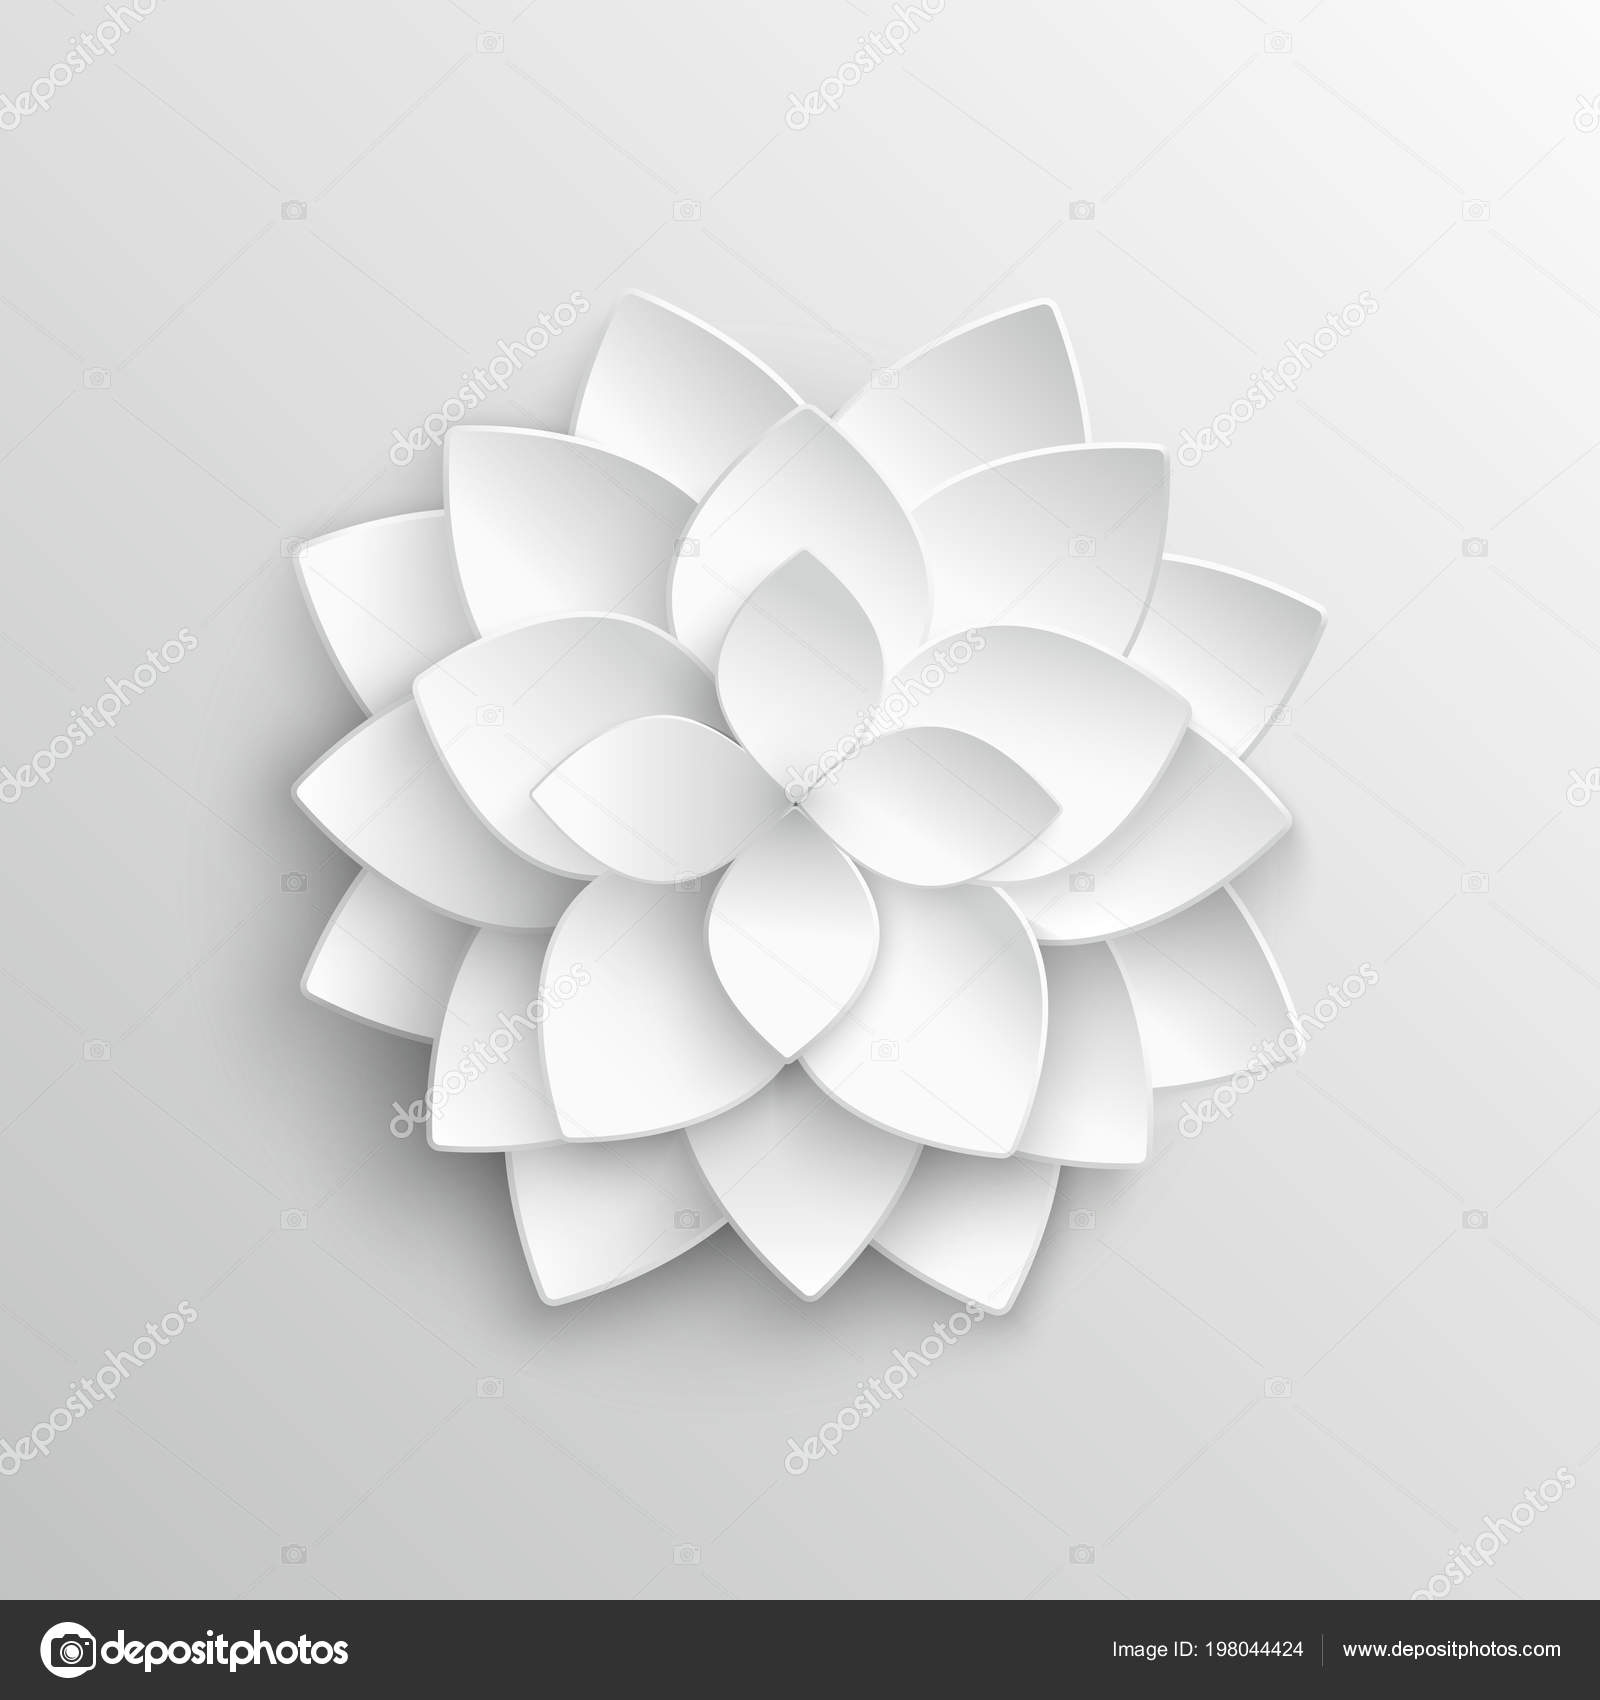 White Paper 3d Lotus Flower In Origami Style Vector Illustration